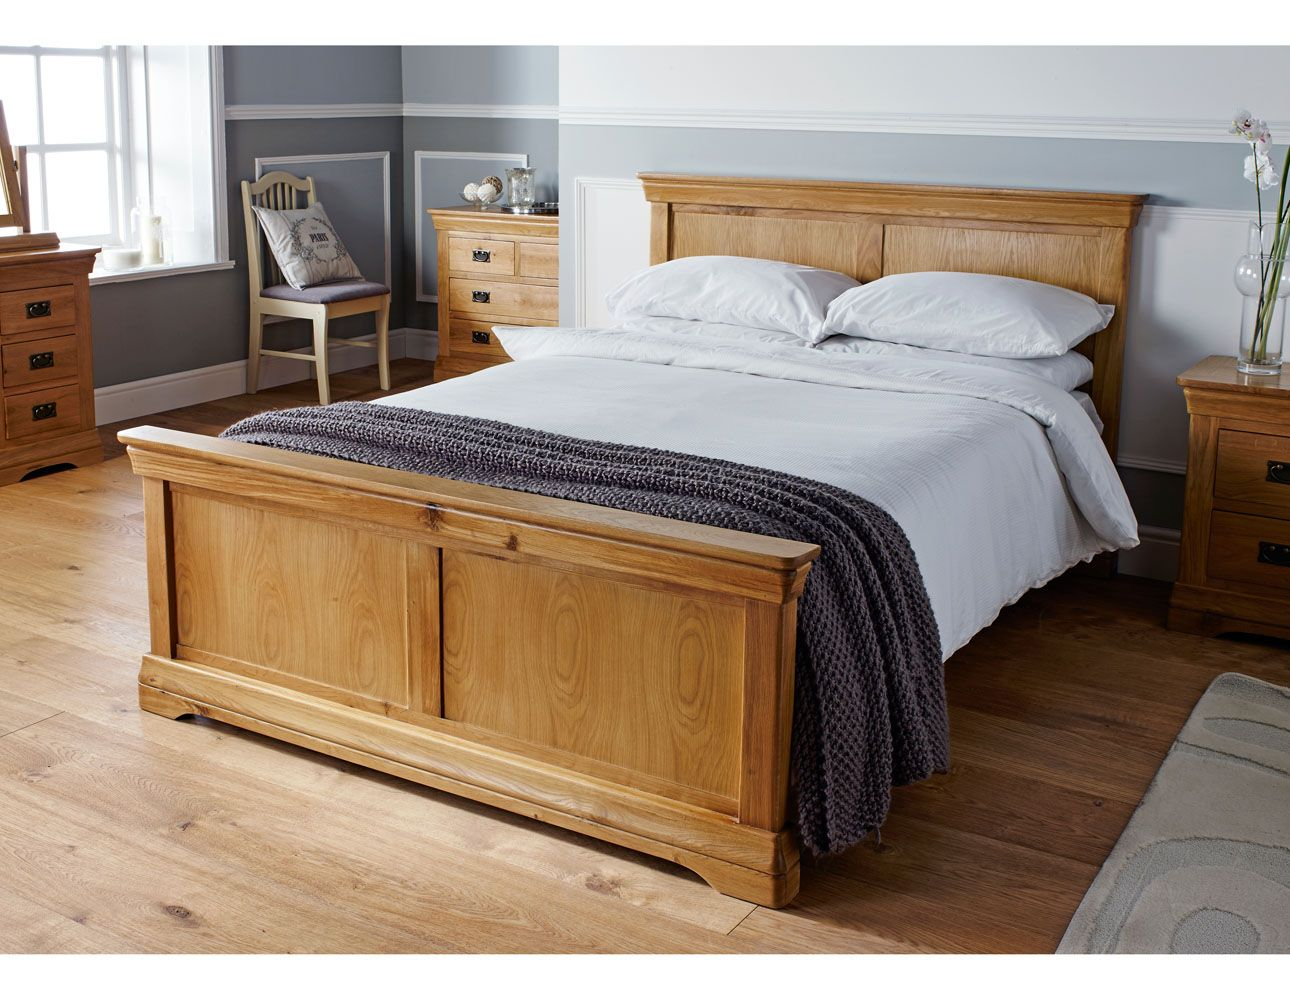 4ft 6 Bed Farmhouse Country Oak Double Bed 4ft 6 Inches